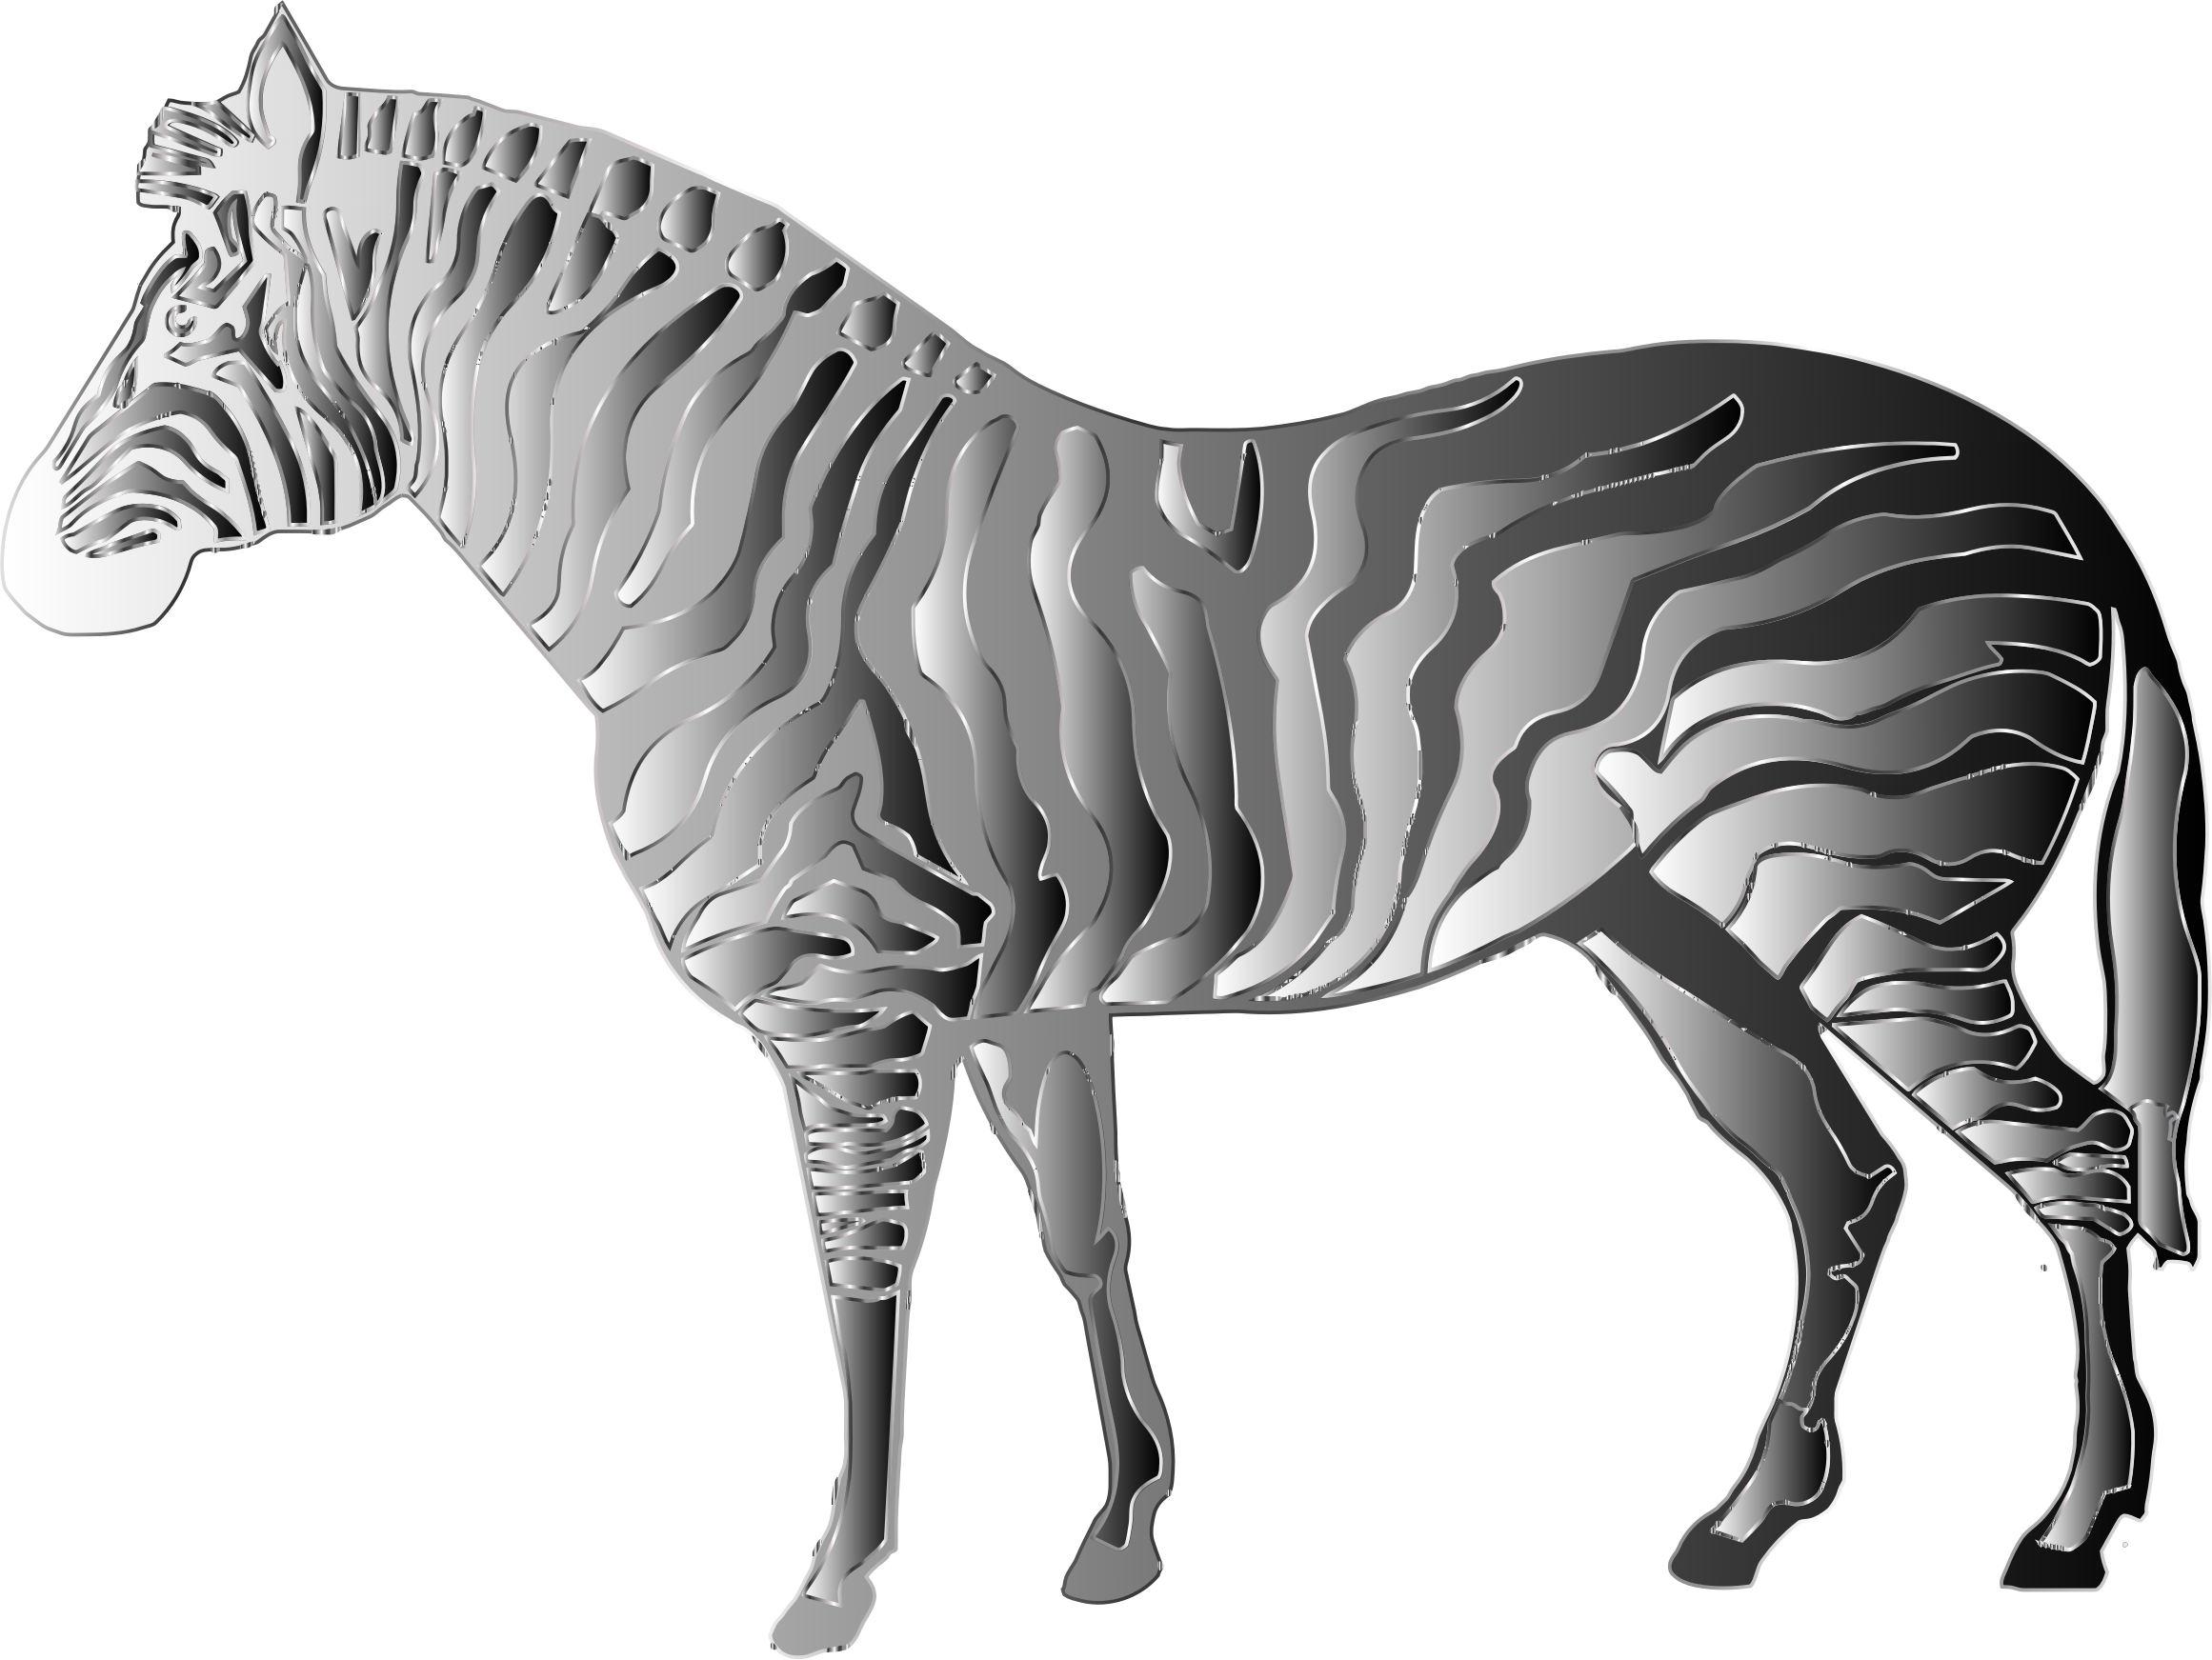 Monochrome Zebra by GDJ